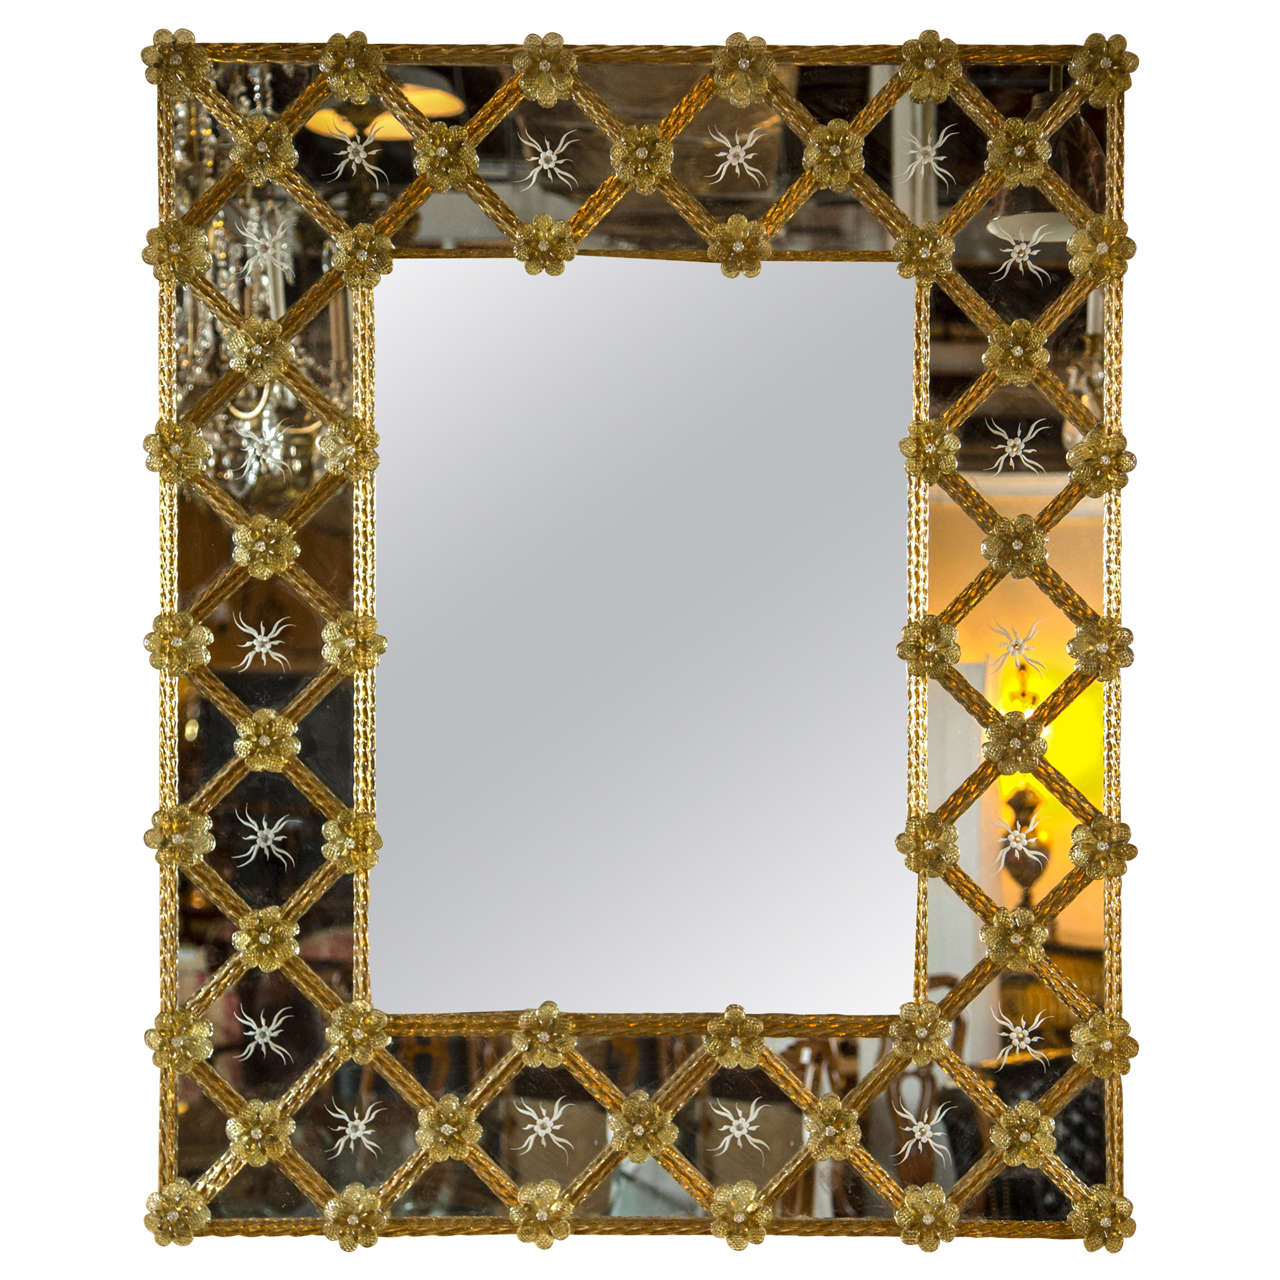 Venetian etched glass and colored wall mirror at 1stdibs for Specchio murano antico